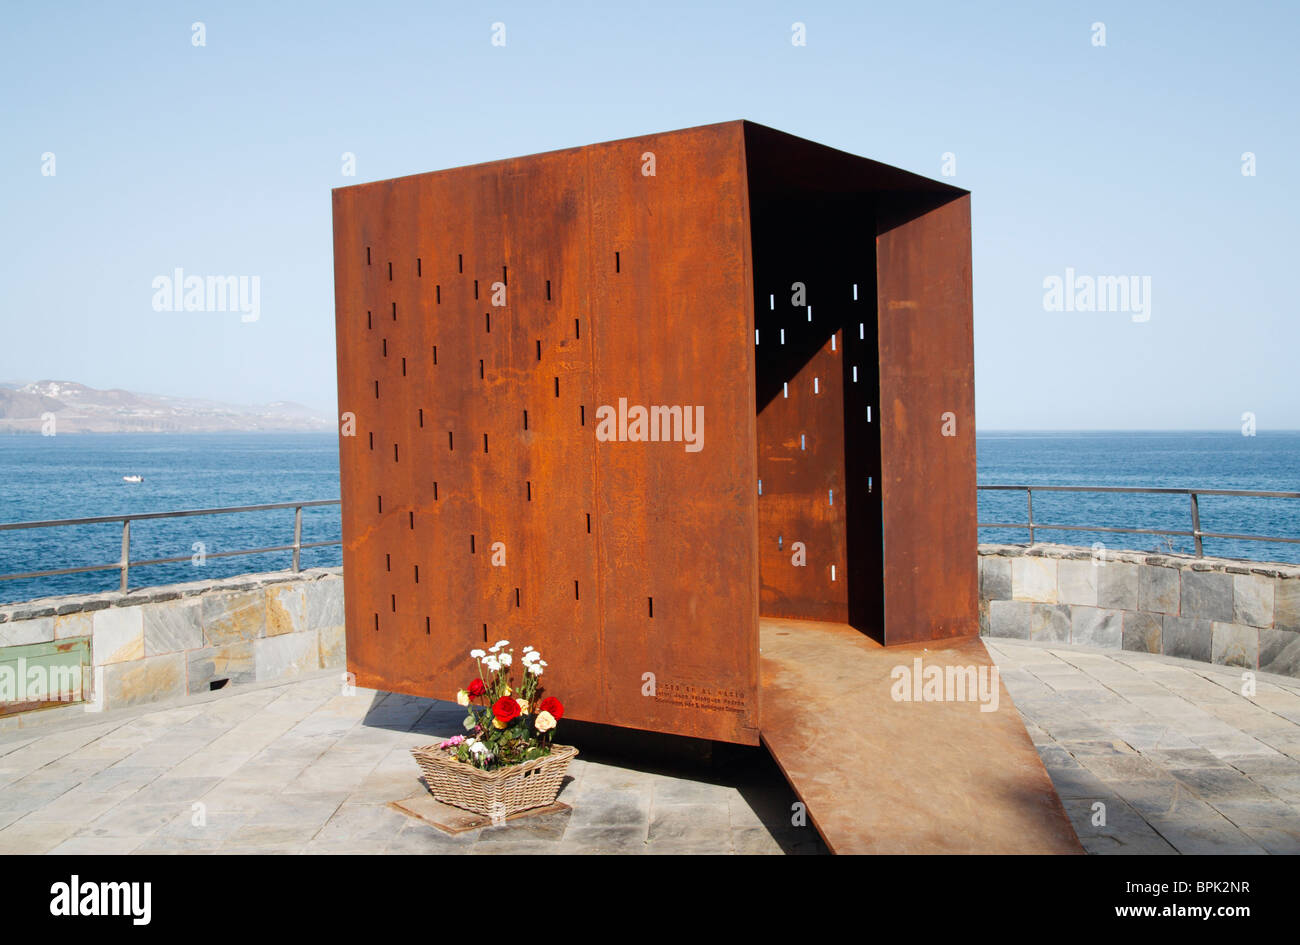 Sculpture in Las Palmas on Gran Canaria in memory of the people who died in the Spanair Madrid - Gran Canaria flight - Stock Image